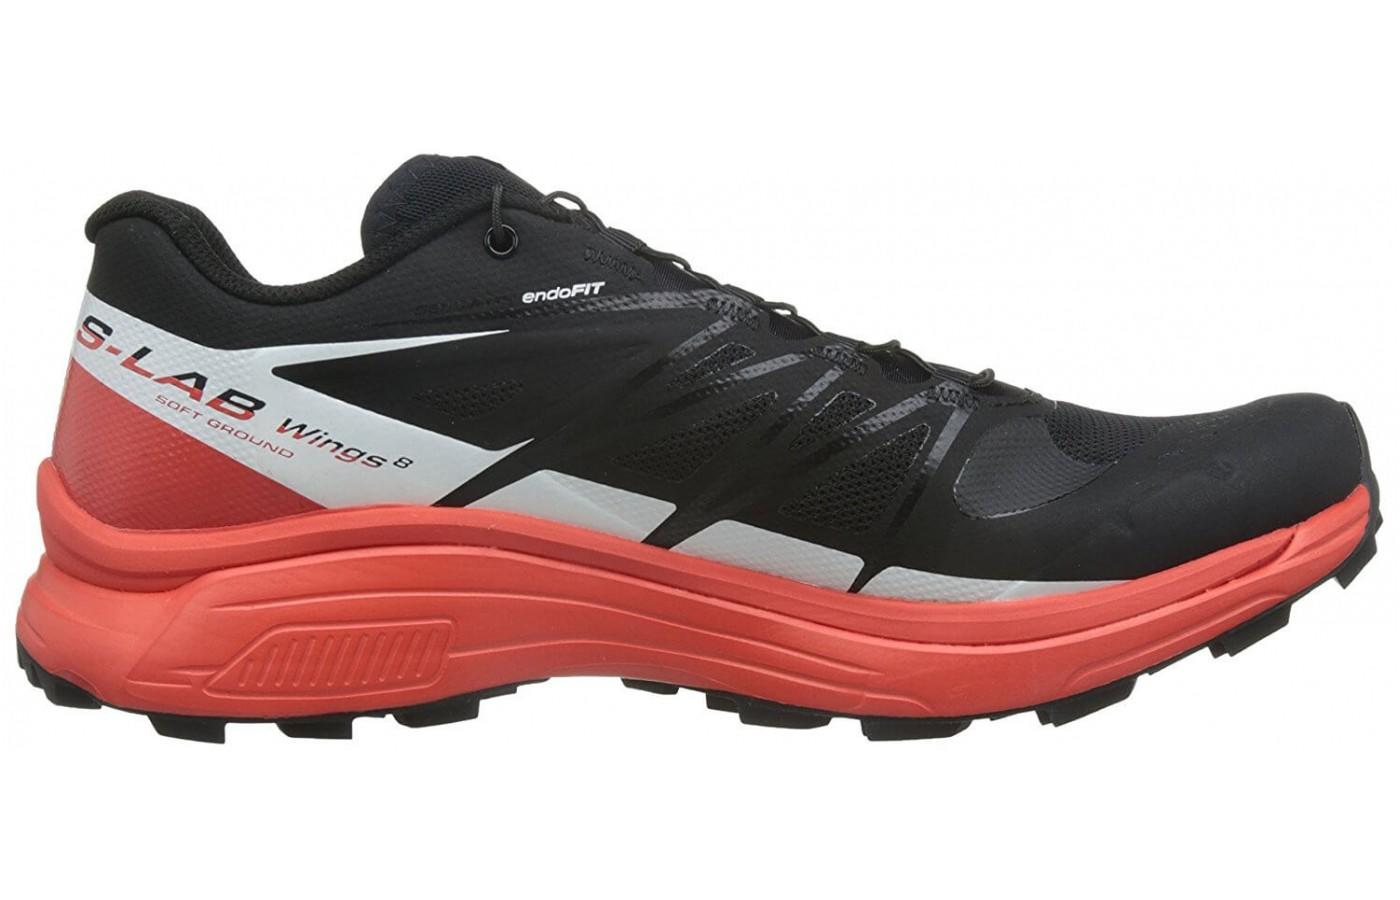 Salomon S-Lab Wings 8 SG features an EVA midsole